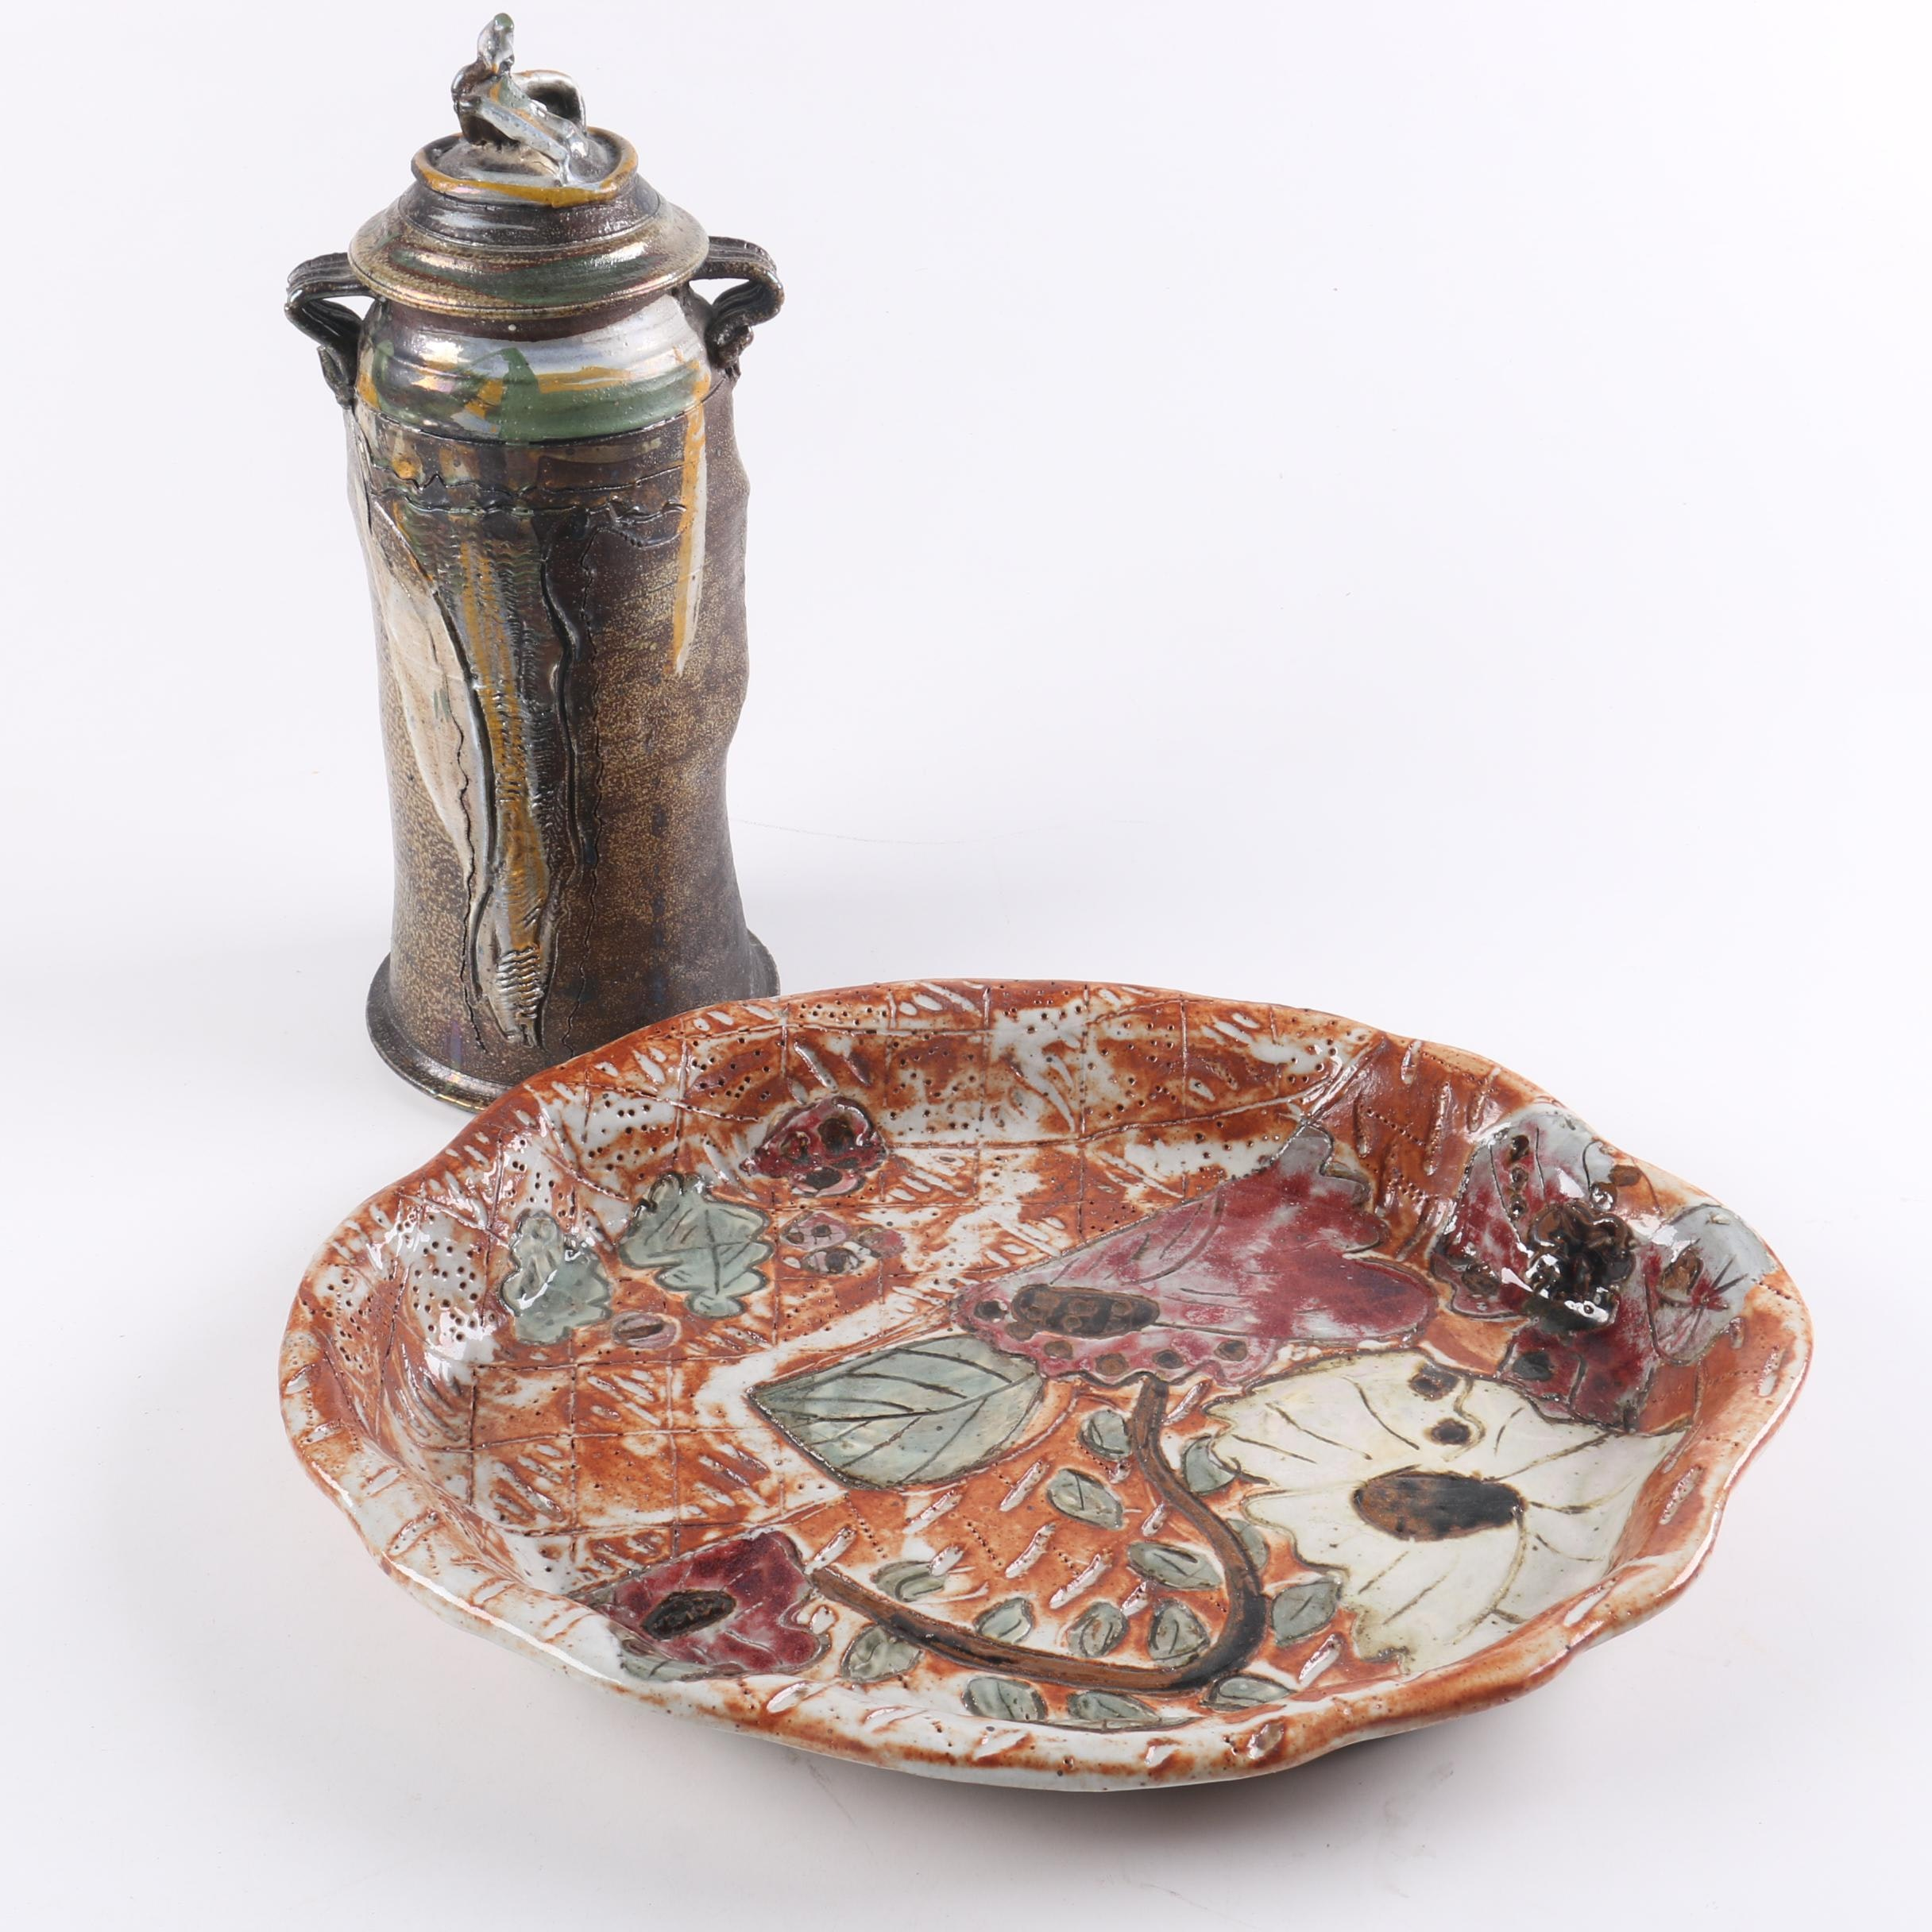 Signed Art Pottery Plate with Lidded Canister